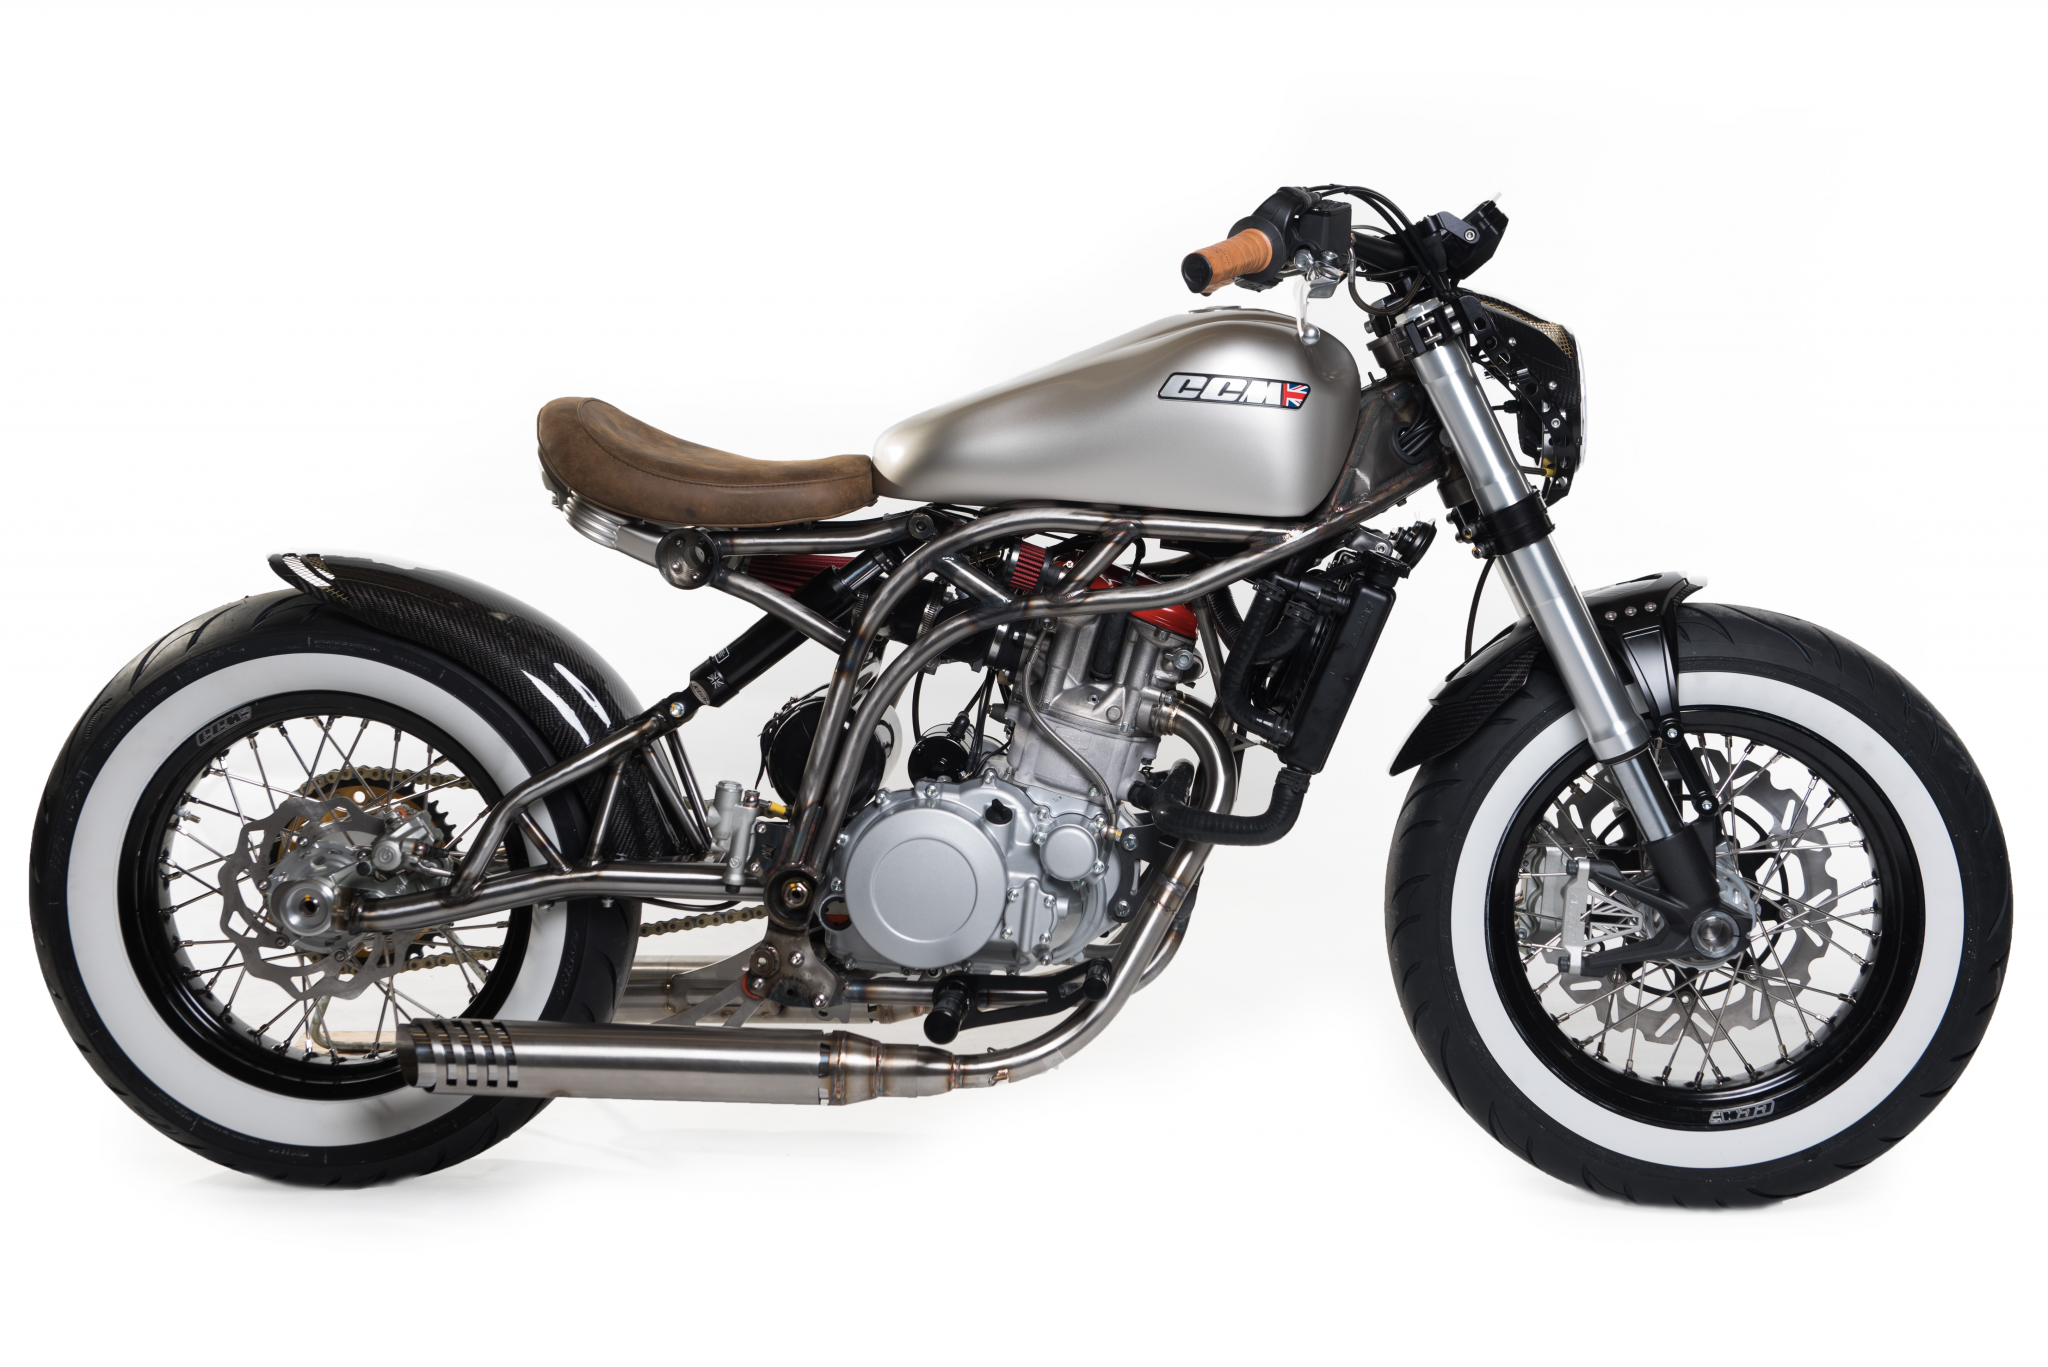 2019 Retro Motorcycles : The Golden Age Of Retros Is Upon Us